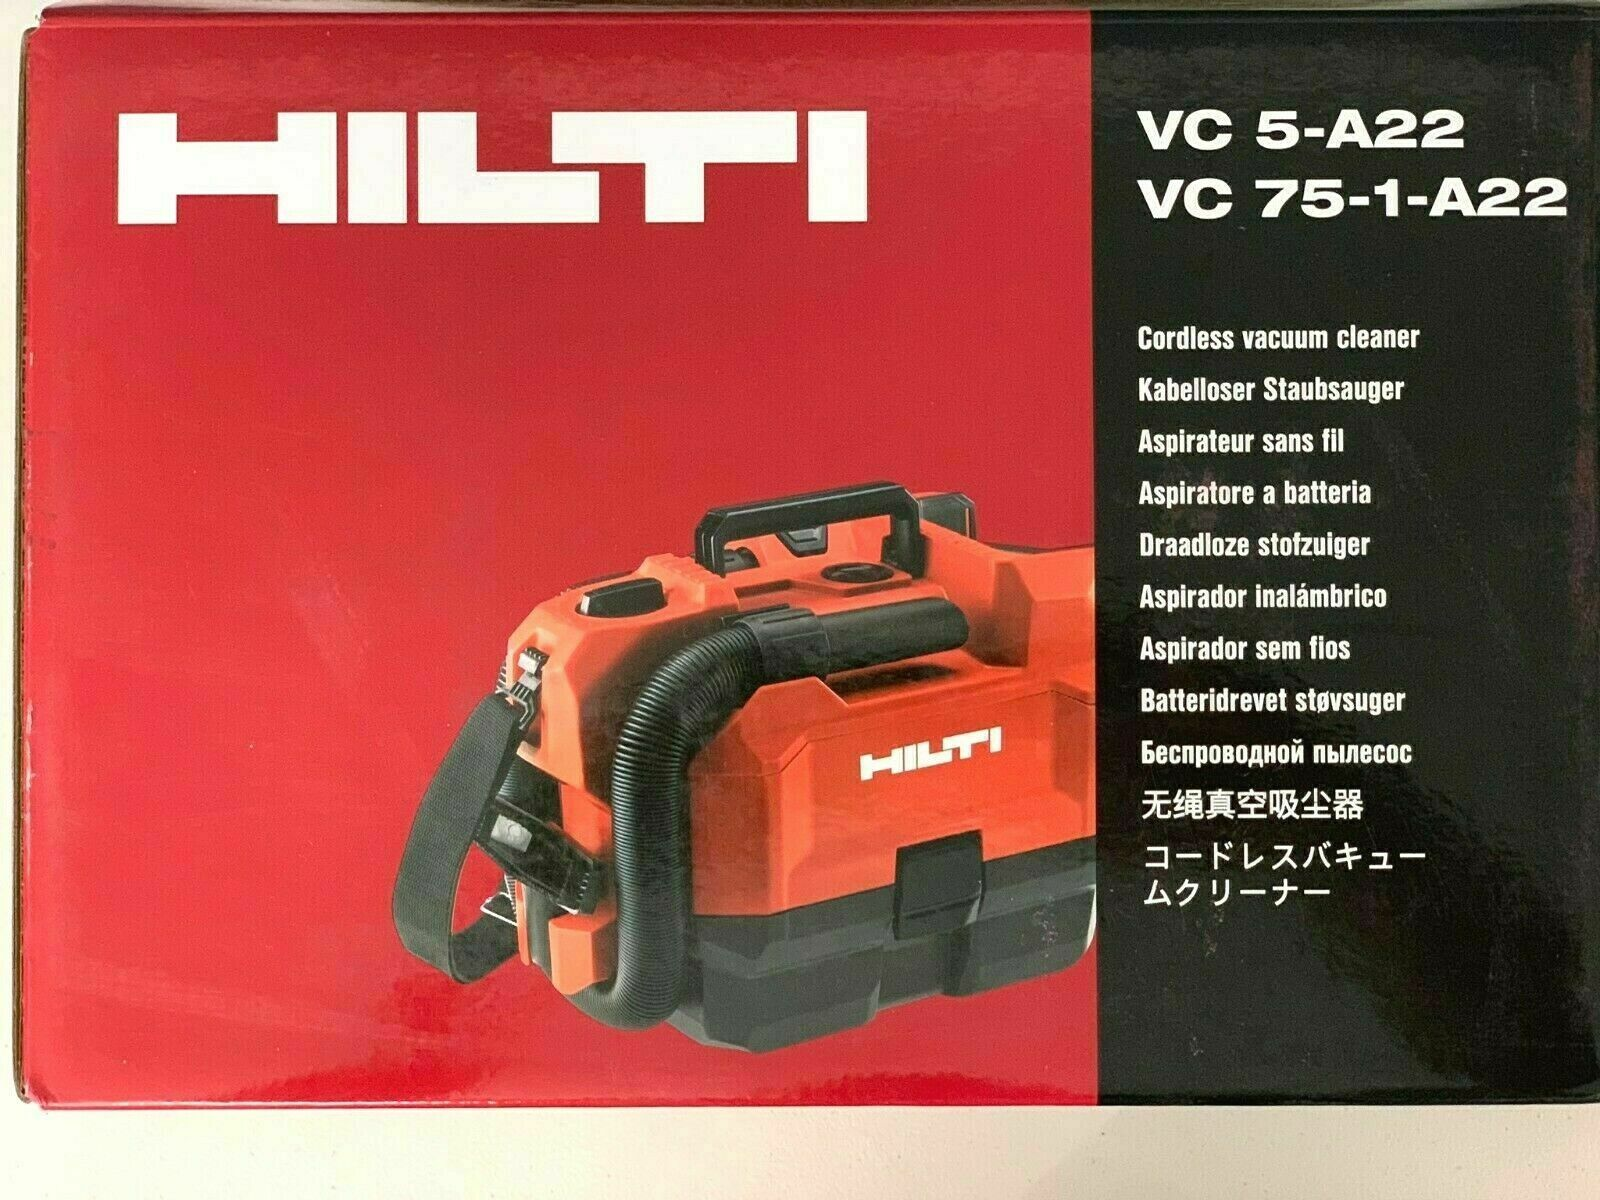 Hilti  VC 75-1-A22 Cordless Portable Vacuum Cleaner  NEW in box